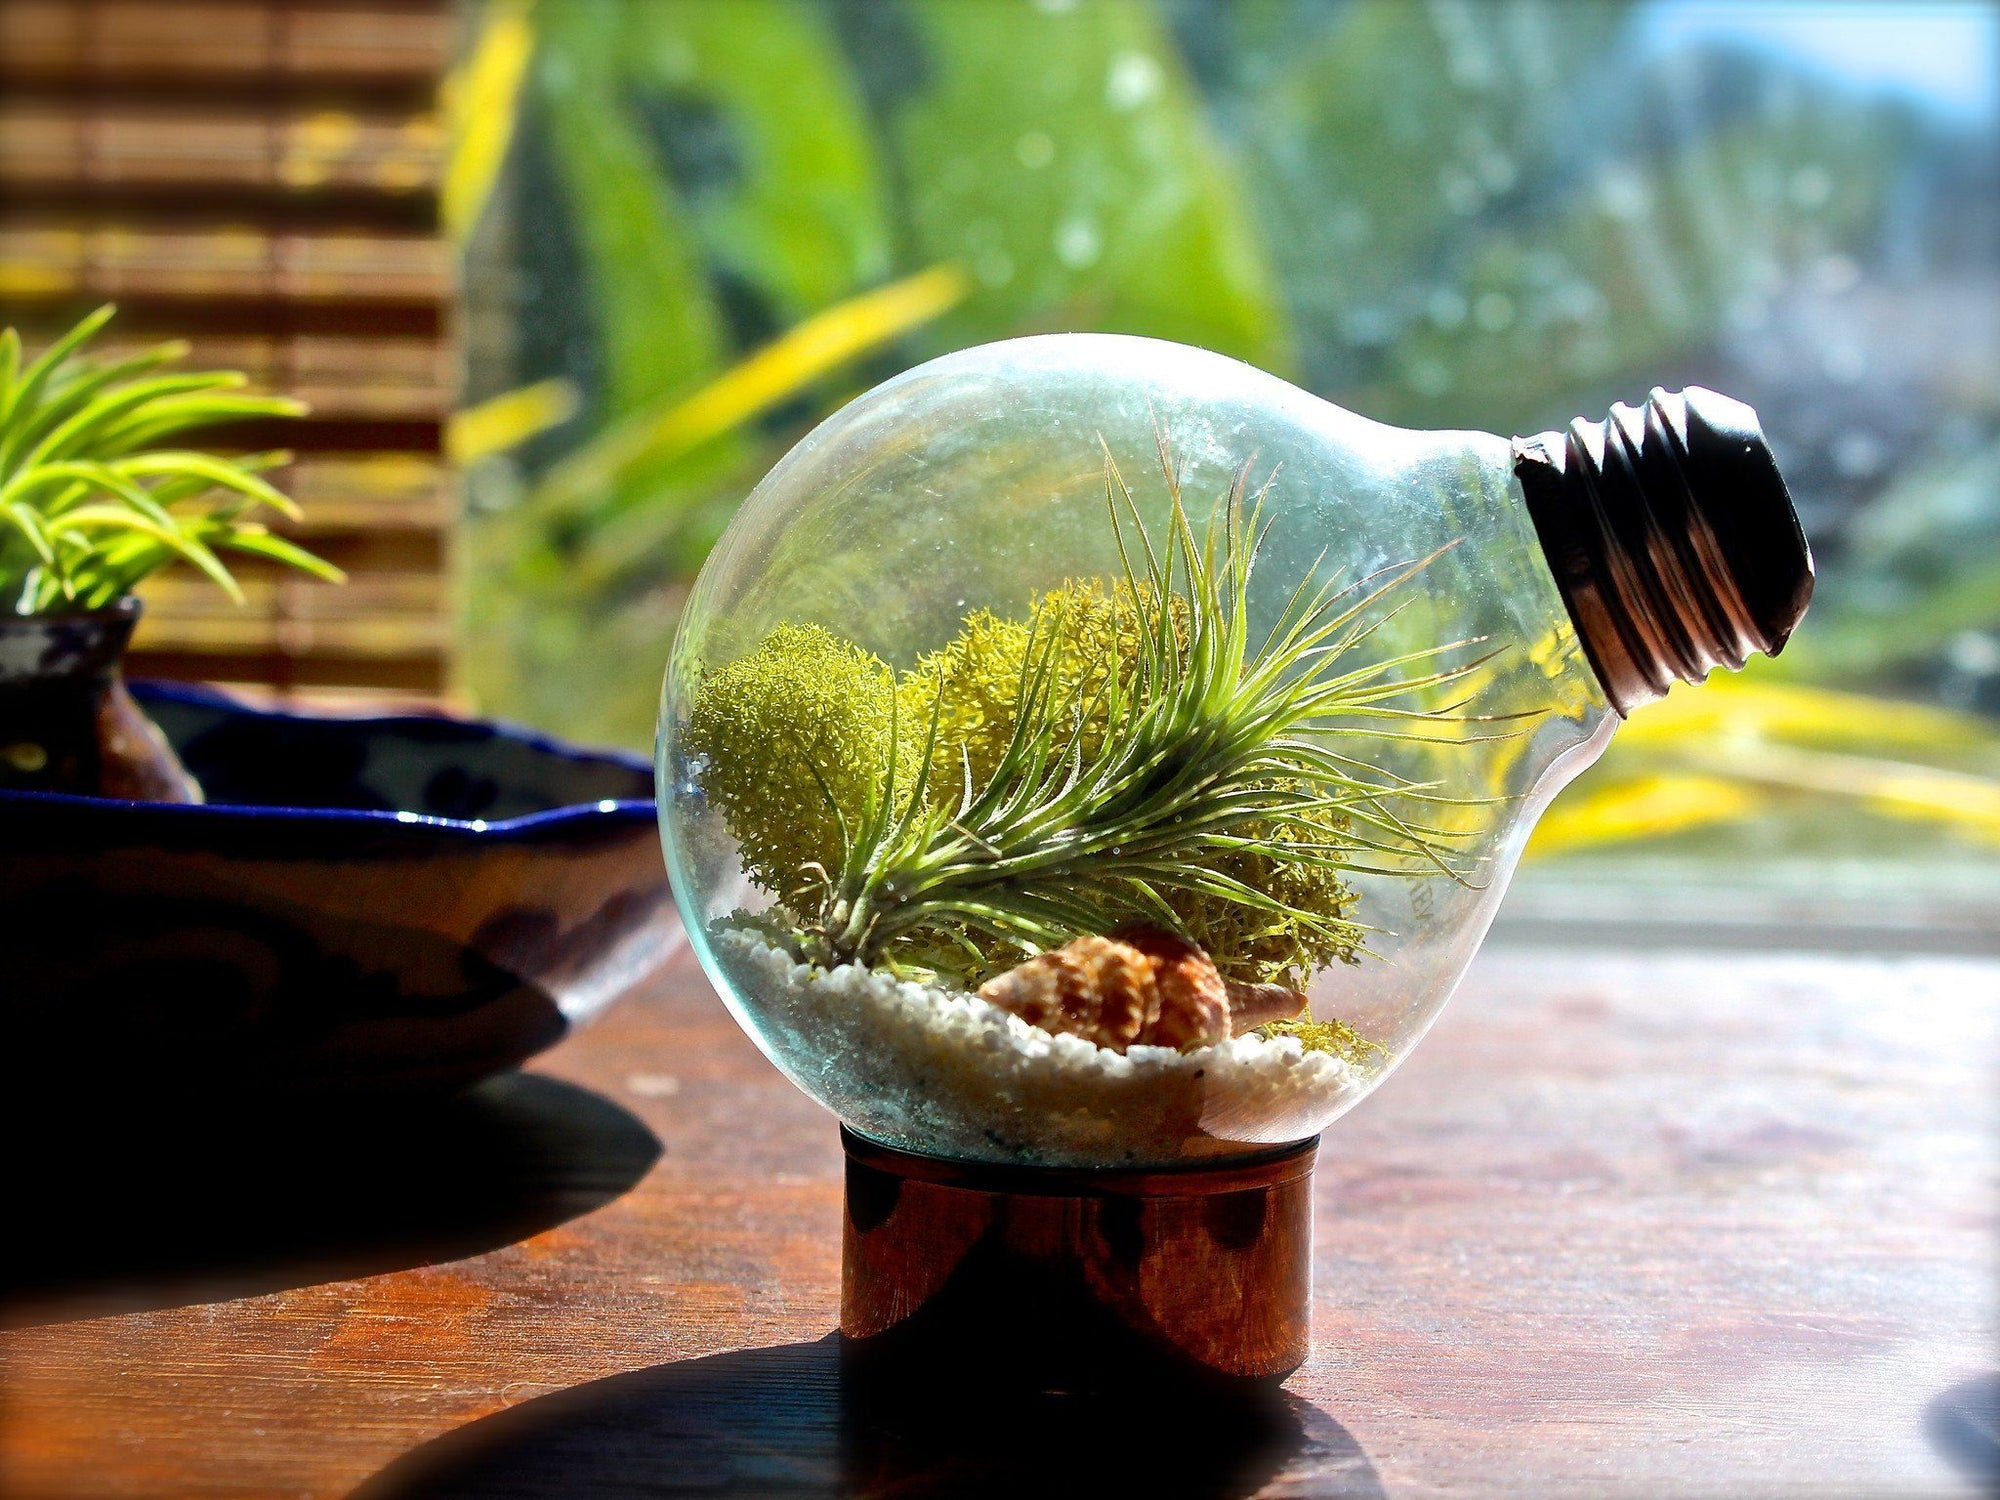 Giving New Life to Old Things With Air Plants